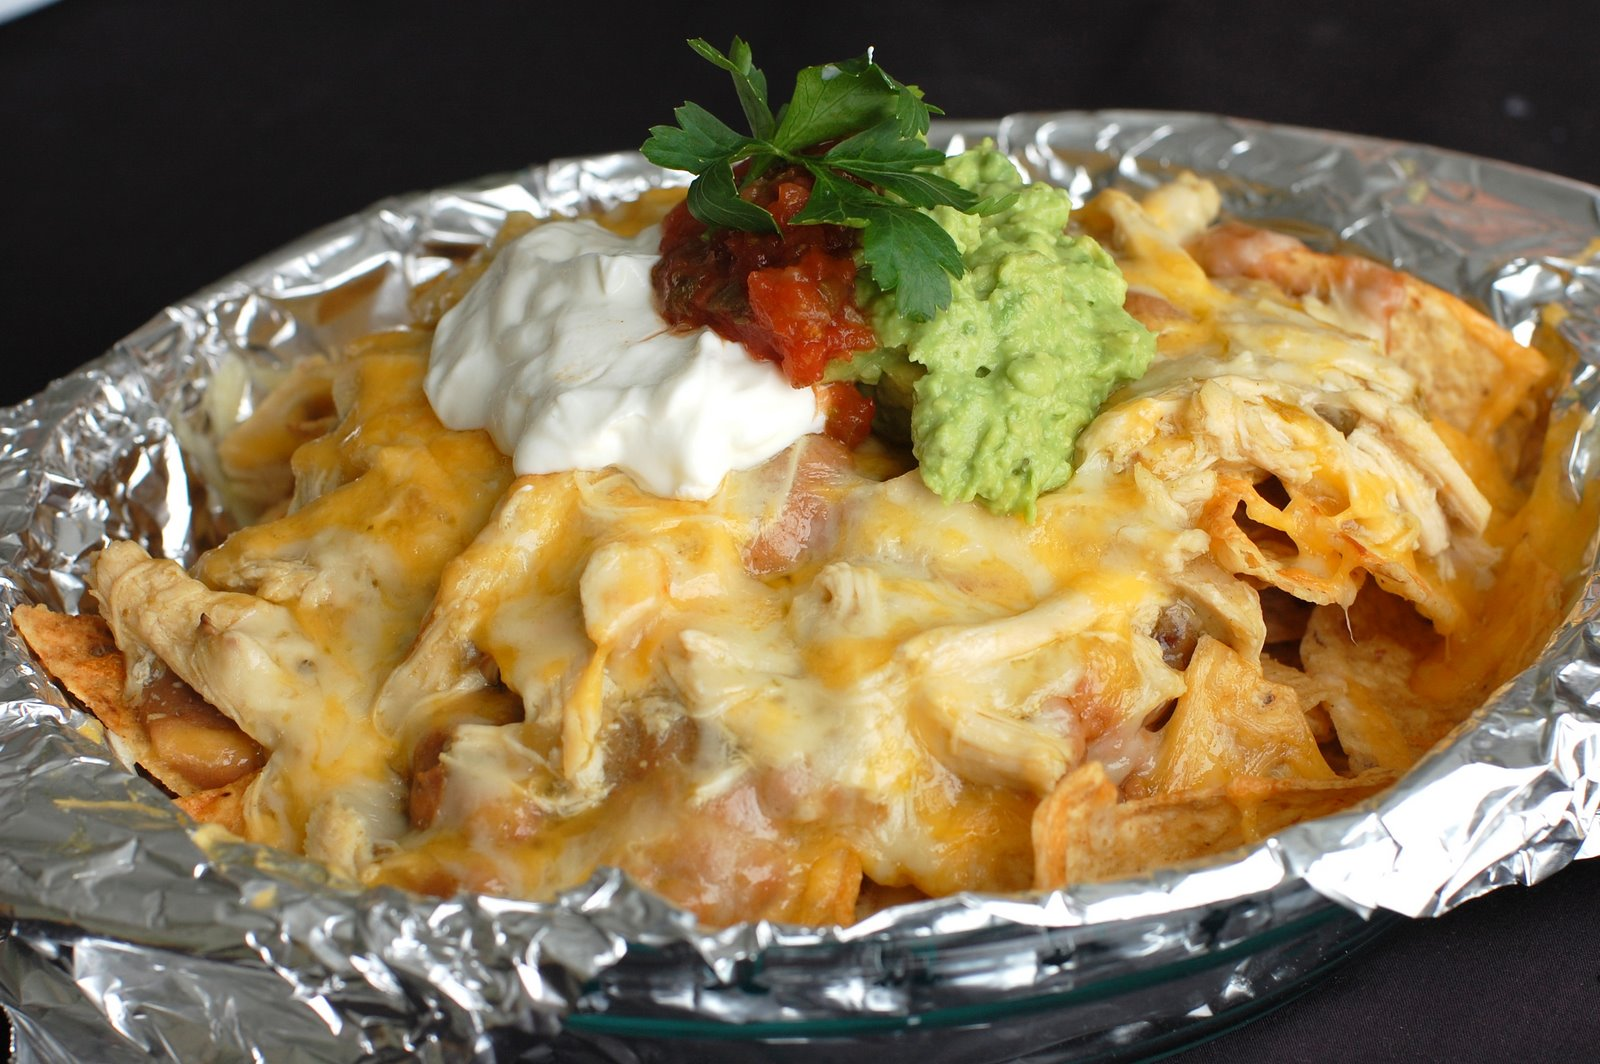 Barefoot and Baking: Restaurant Style Chicken Nachos